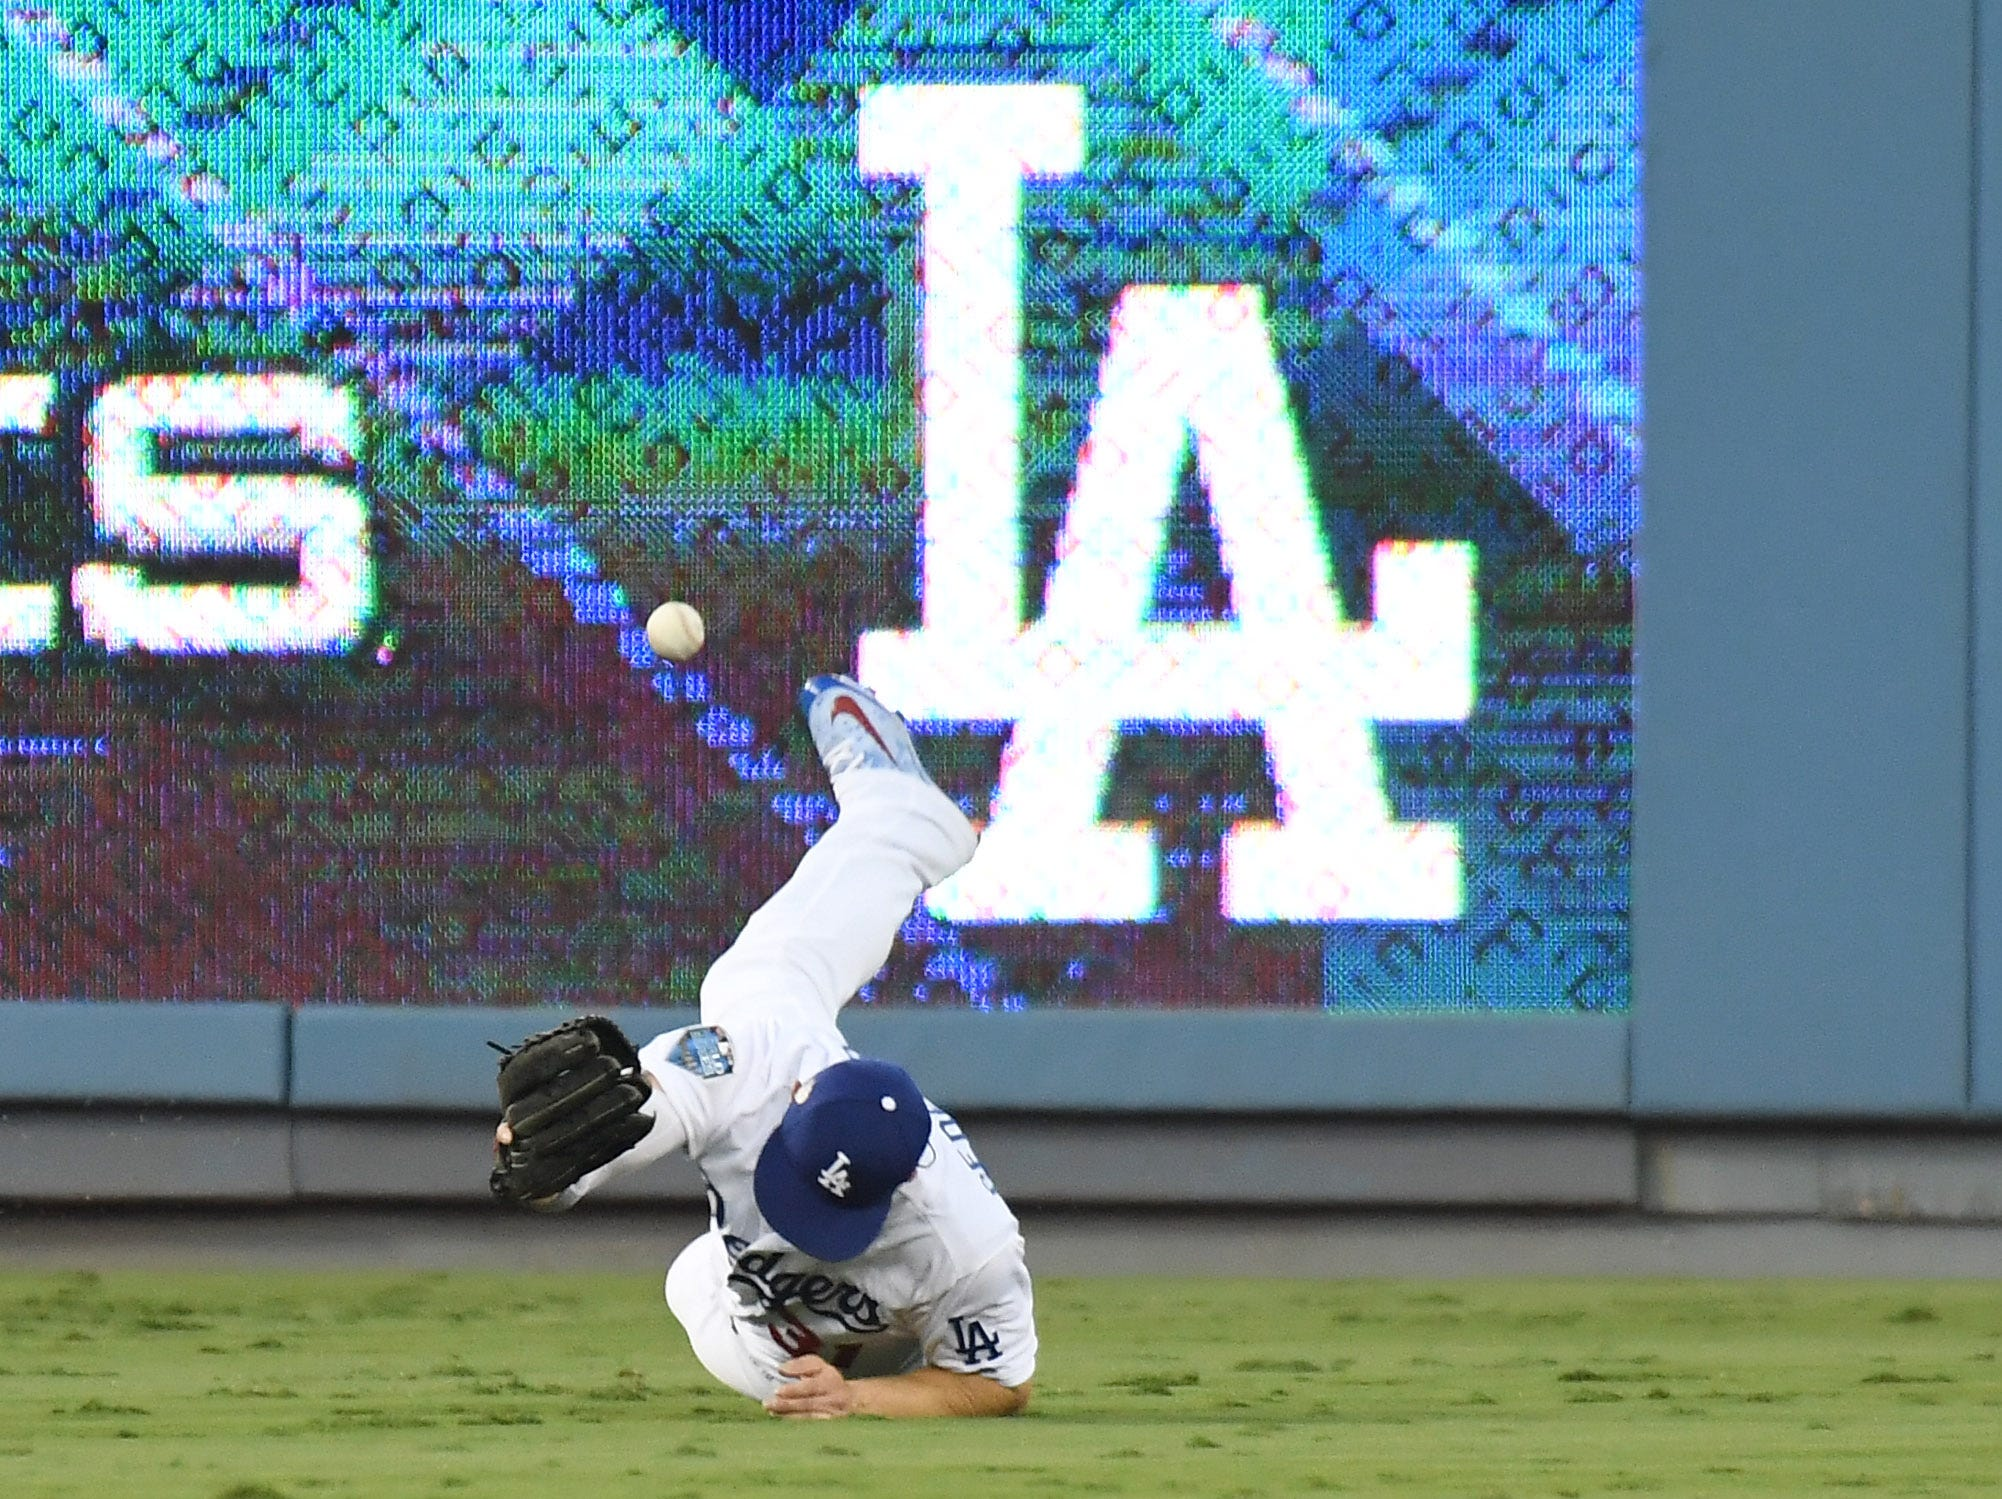 Game 3 at Dodgers Stadium: Left fielder Joc Pederson can't catch a single hit by Christian Vazquez in the third inning.